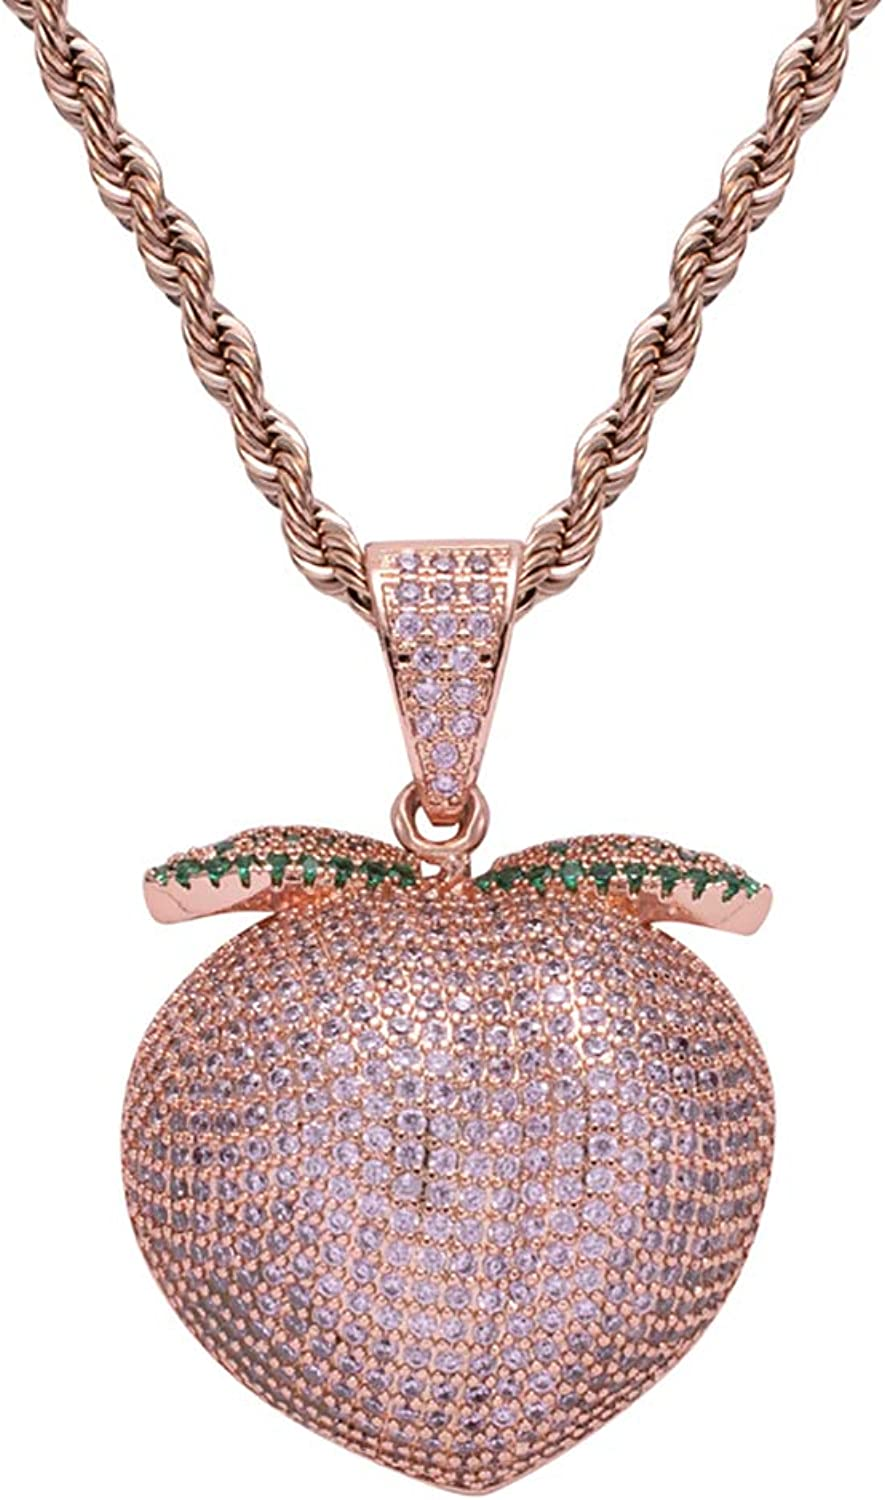 Unisex pink gold Peach Fruit Pendant Hip Hop Iced Out Crystal Necklace with 60Cm Stainless Rope Chain for Men Women